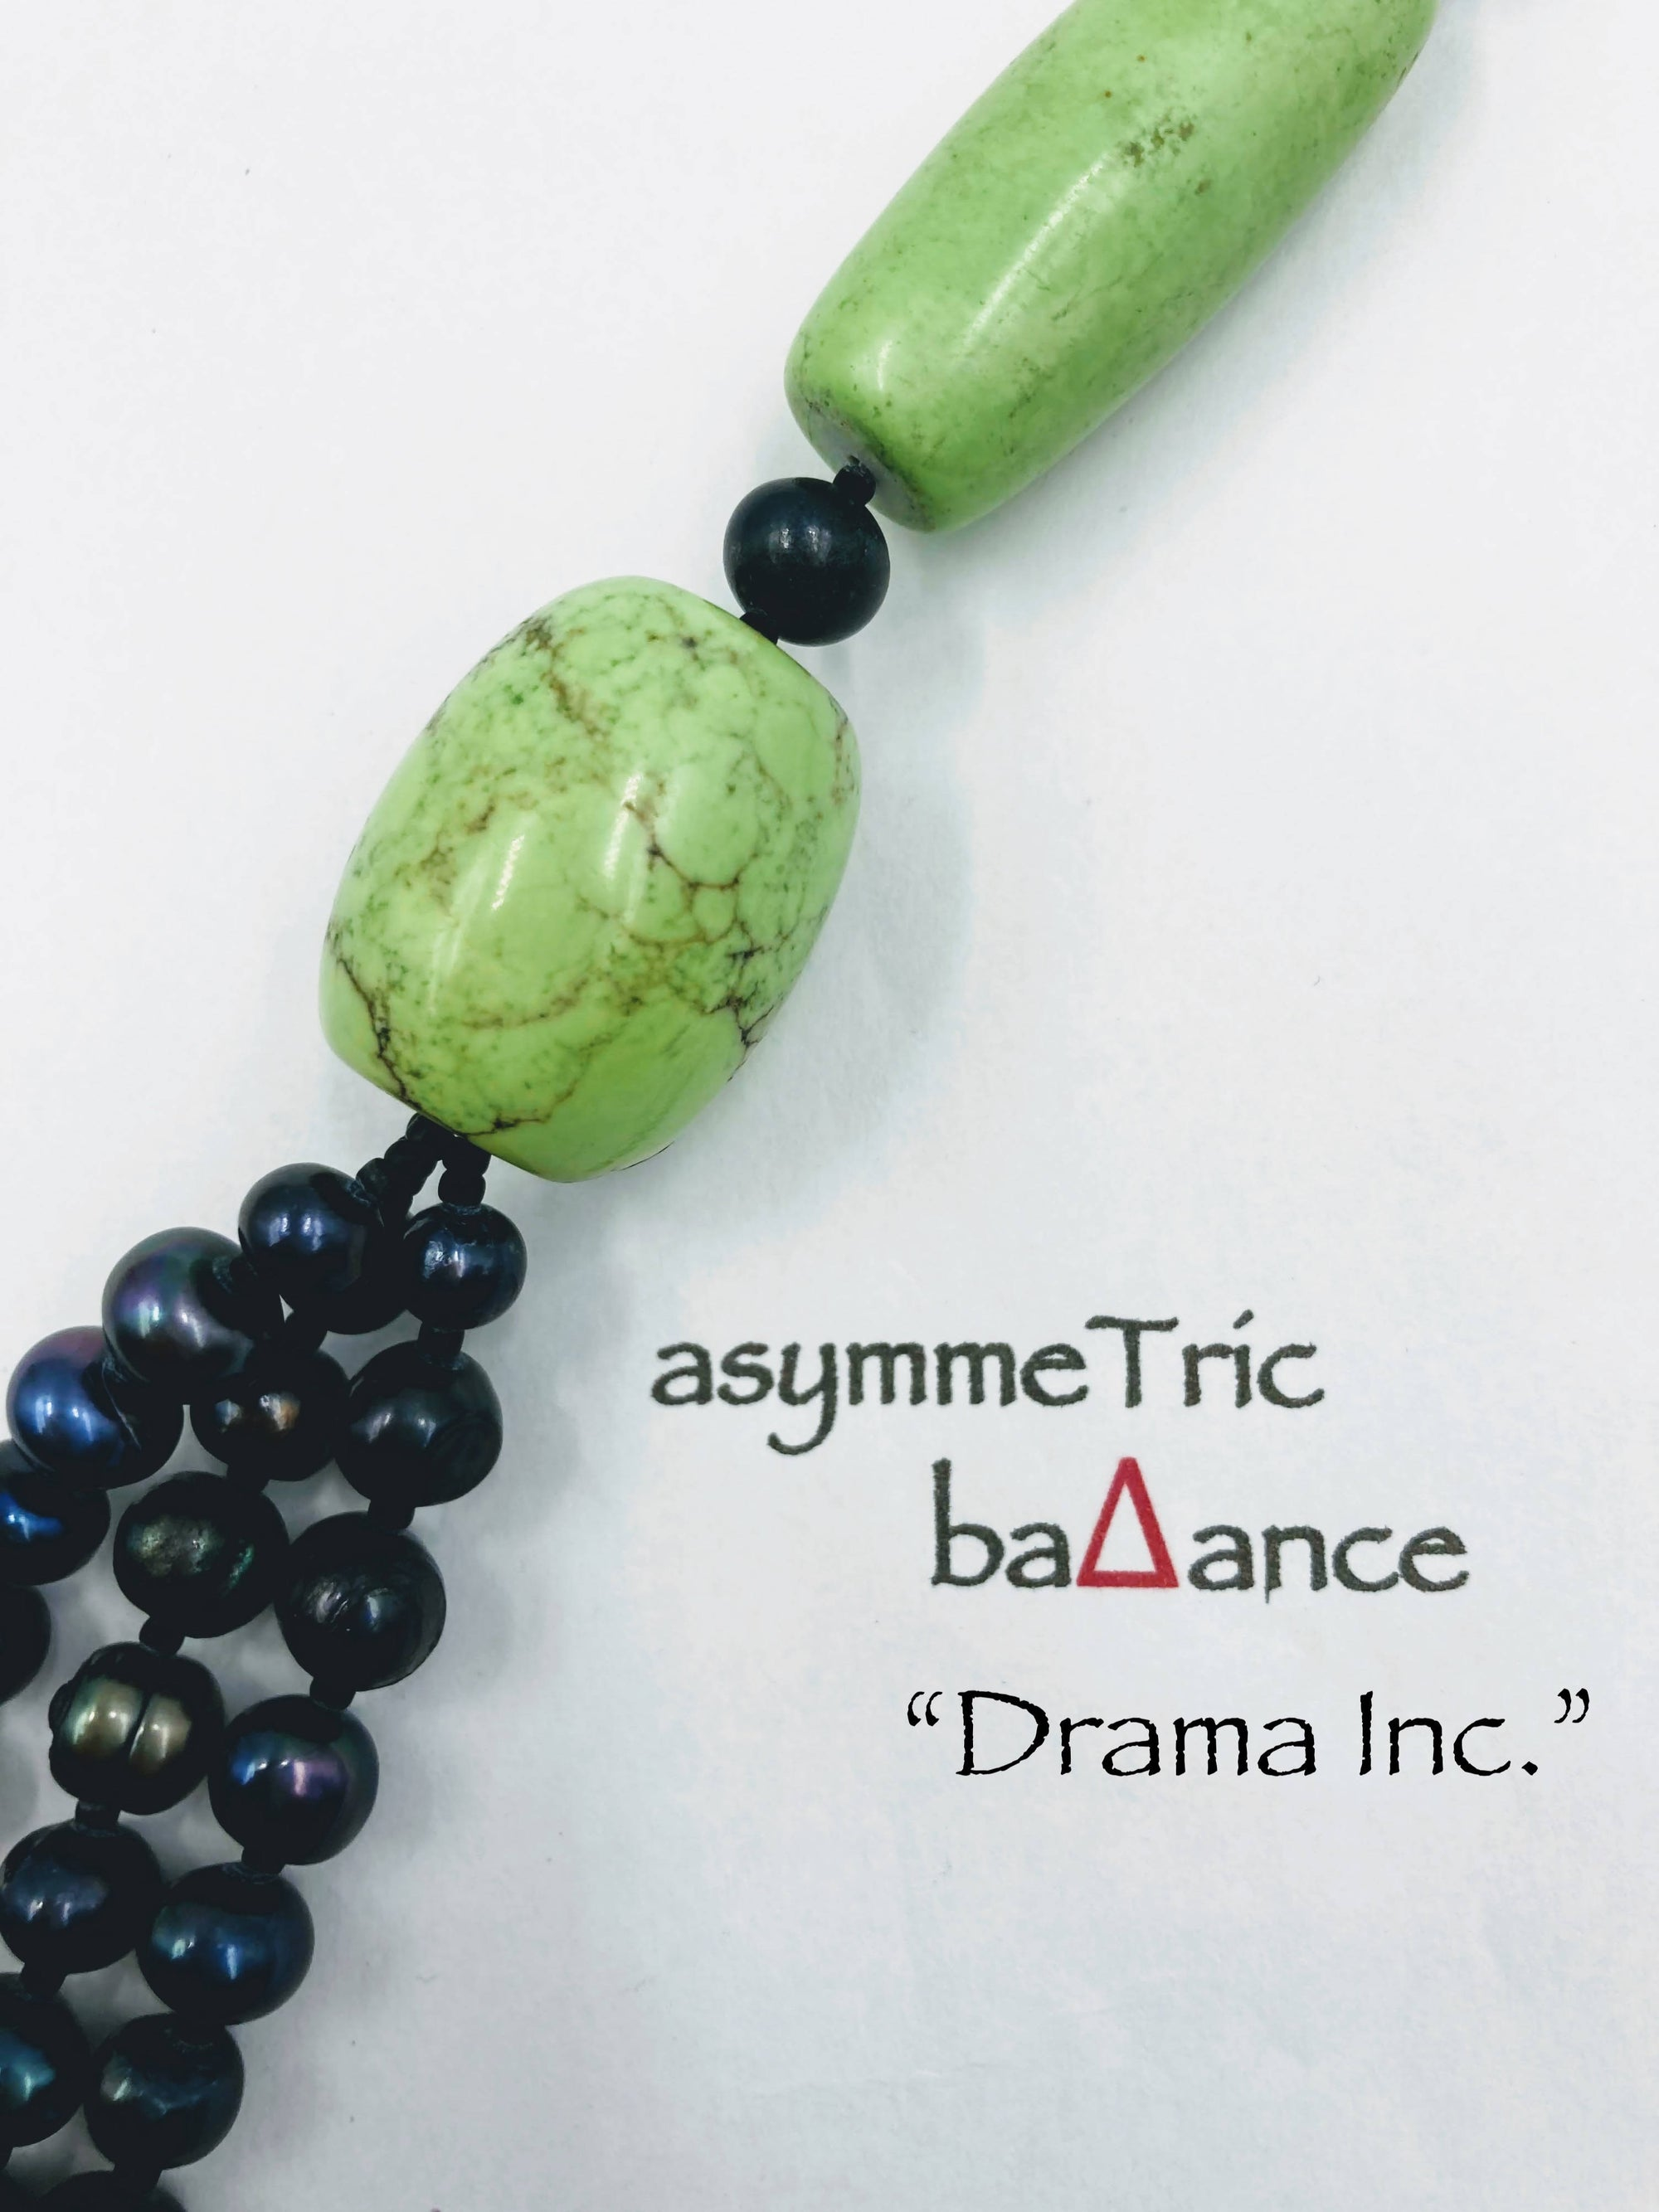 Drama Inc. - pistachio and black designer asymmetric statement necklace